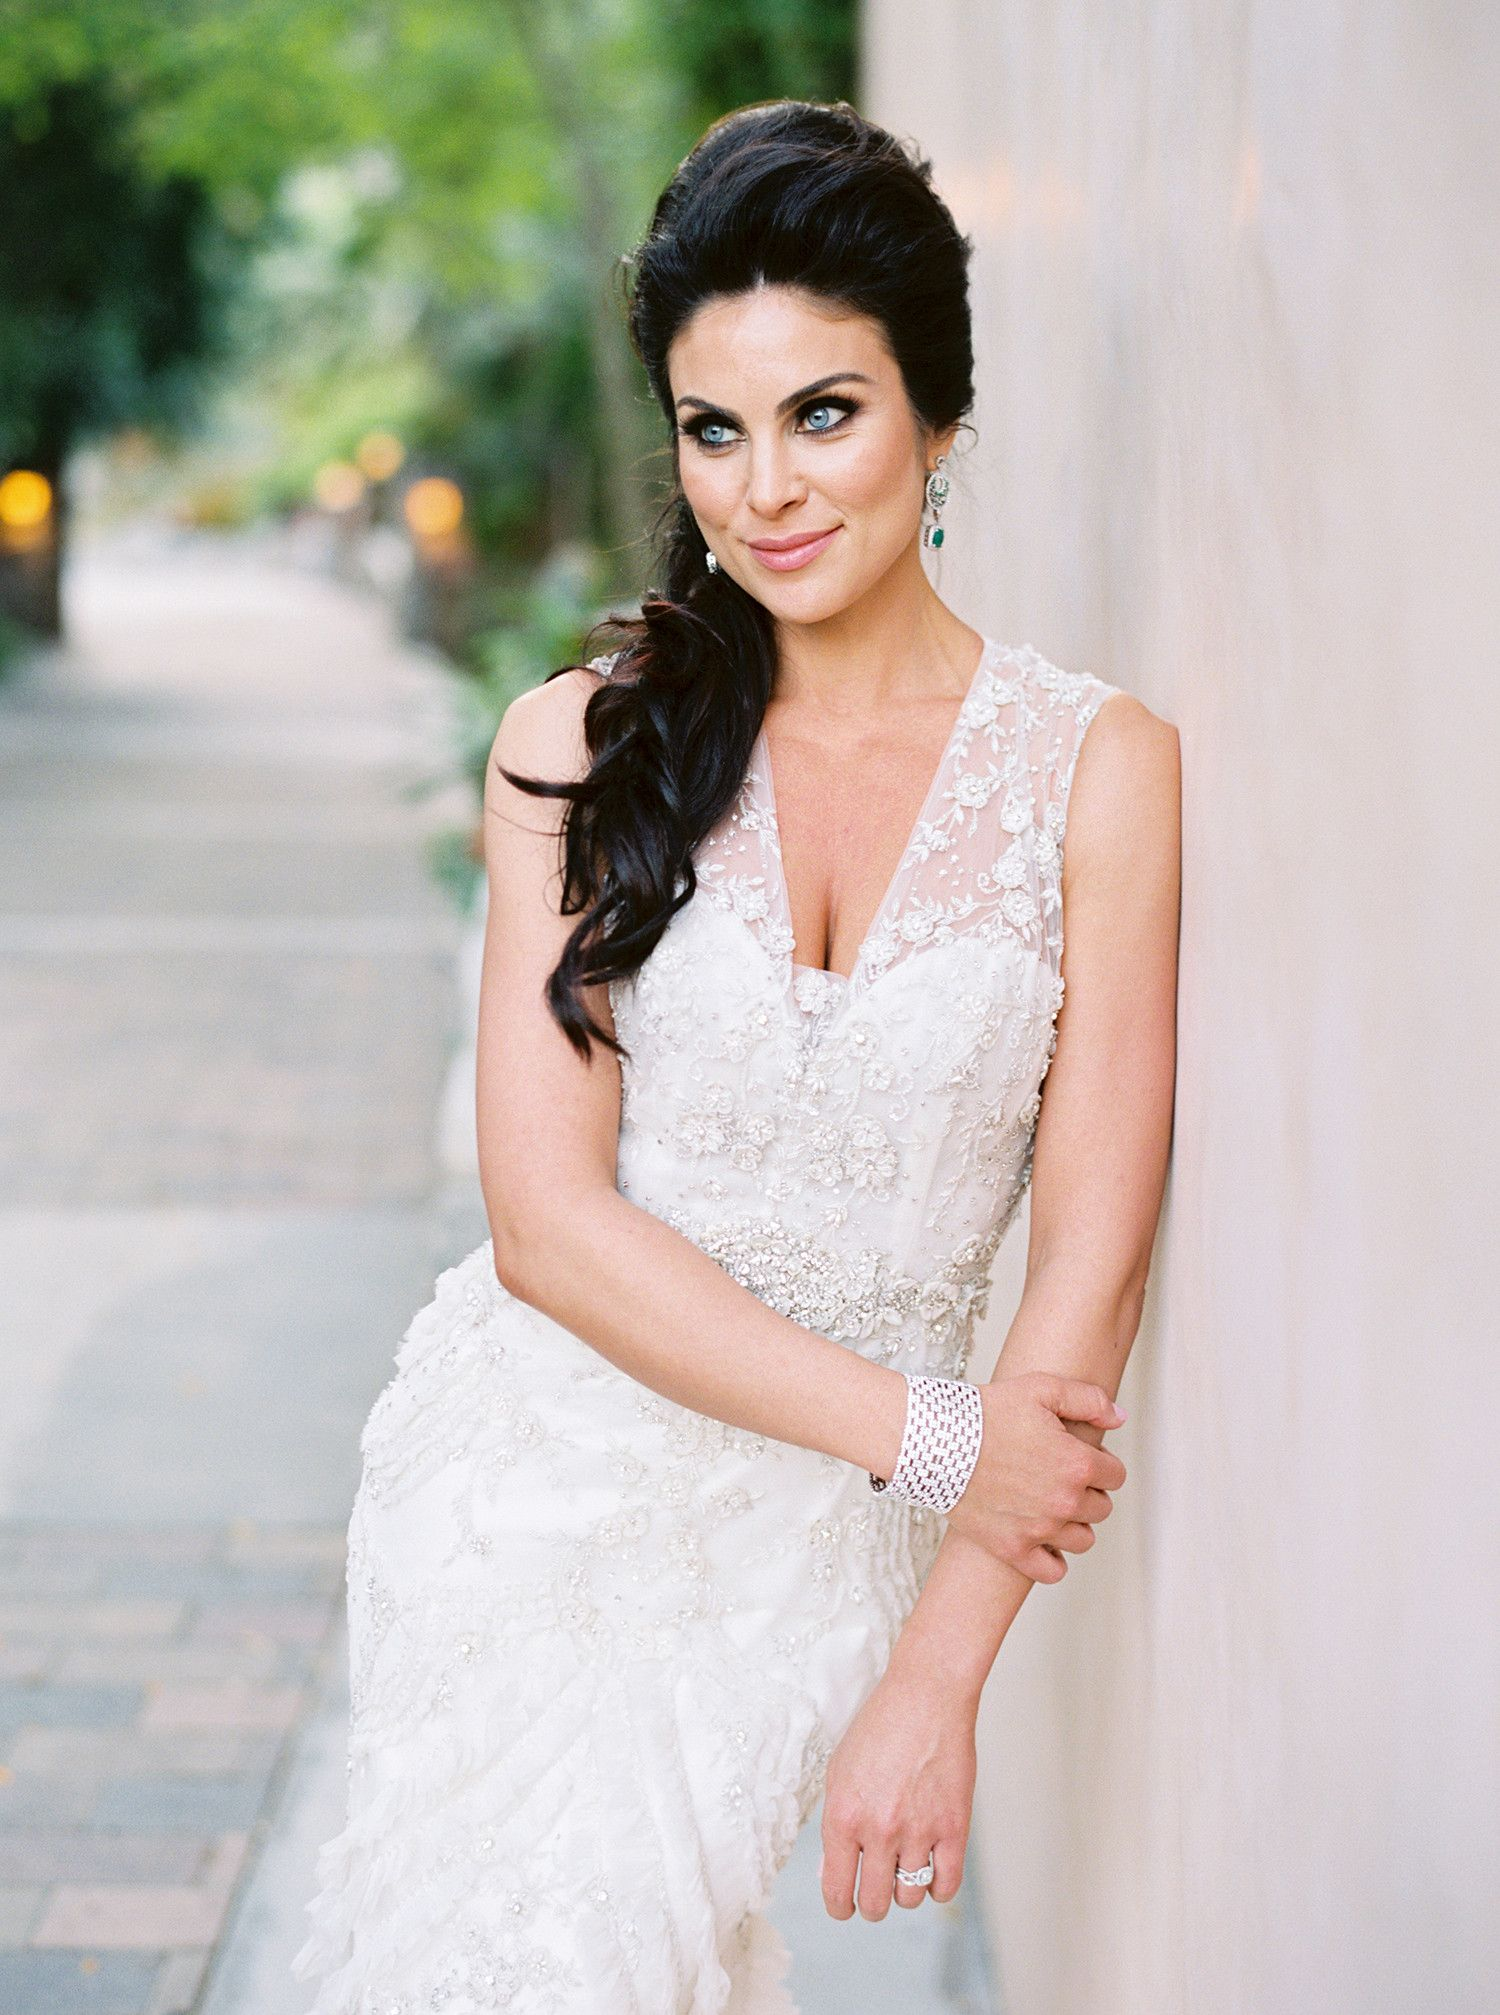 The Best Hairstyles for Every Wedding Dress Neckline | Side swept ...